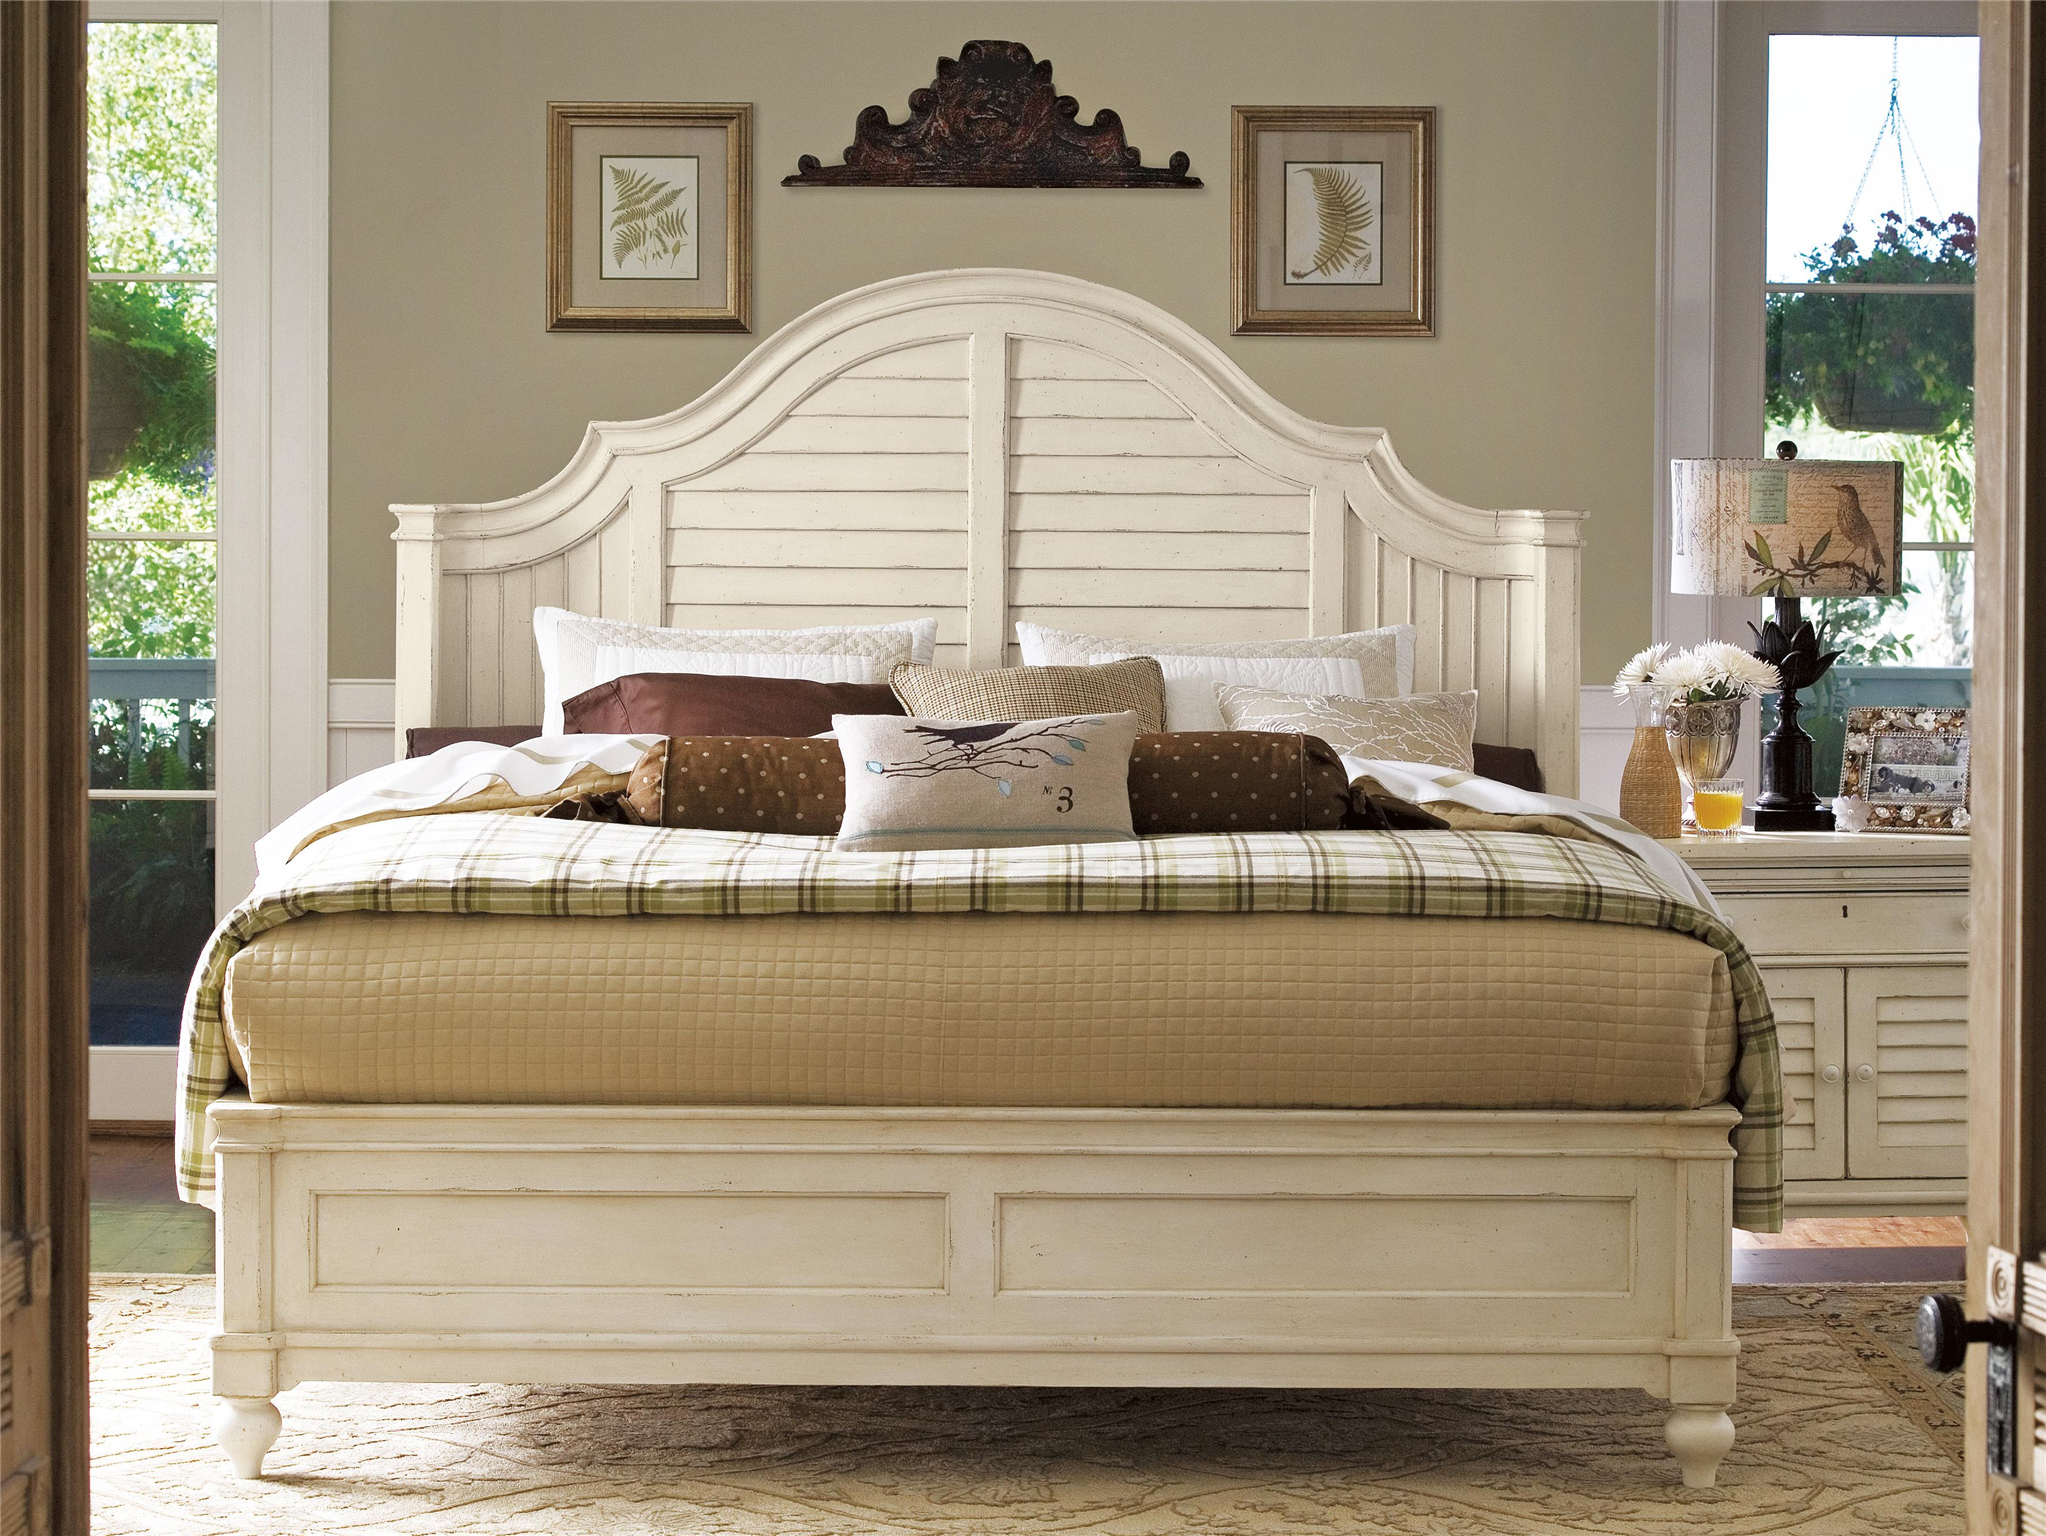 Universal Furniture Paula Deen Home Steel Magnolia Bed